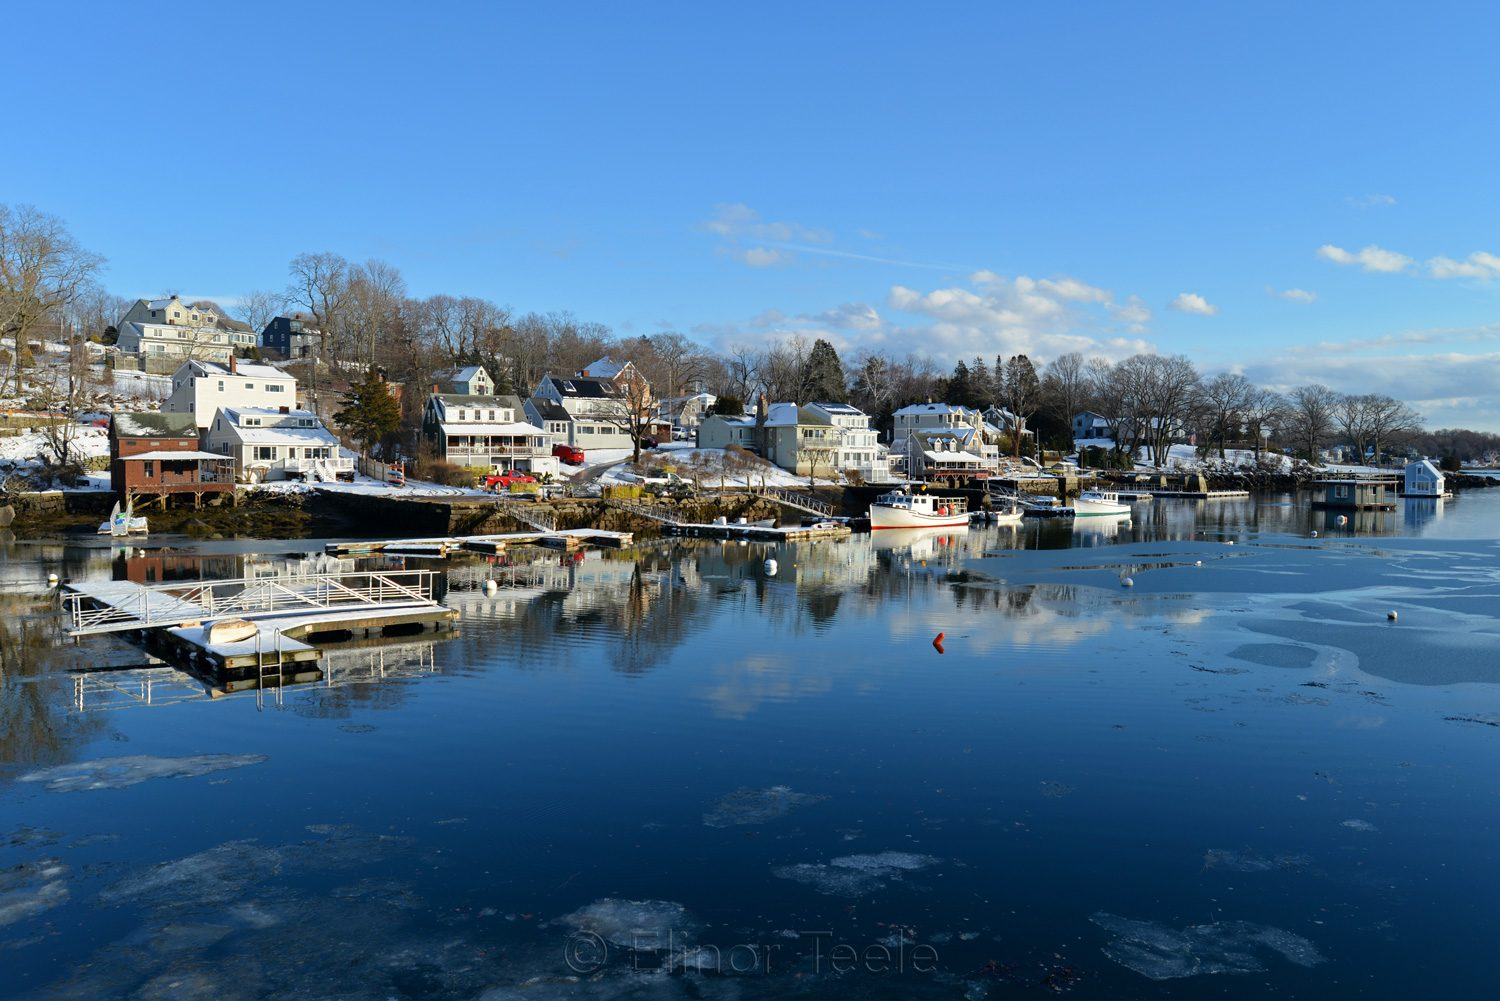 Annisquam Harbor in Melting Snows